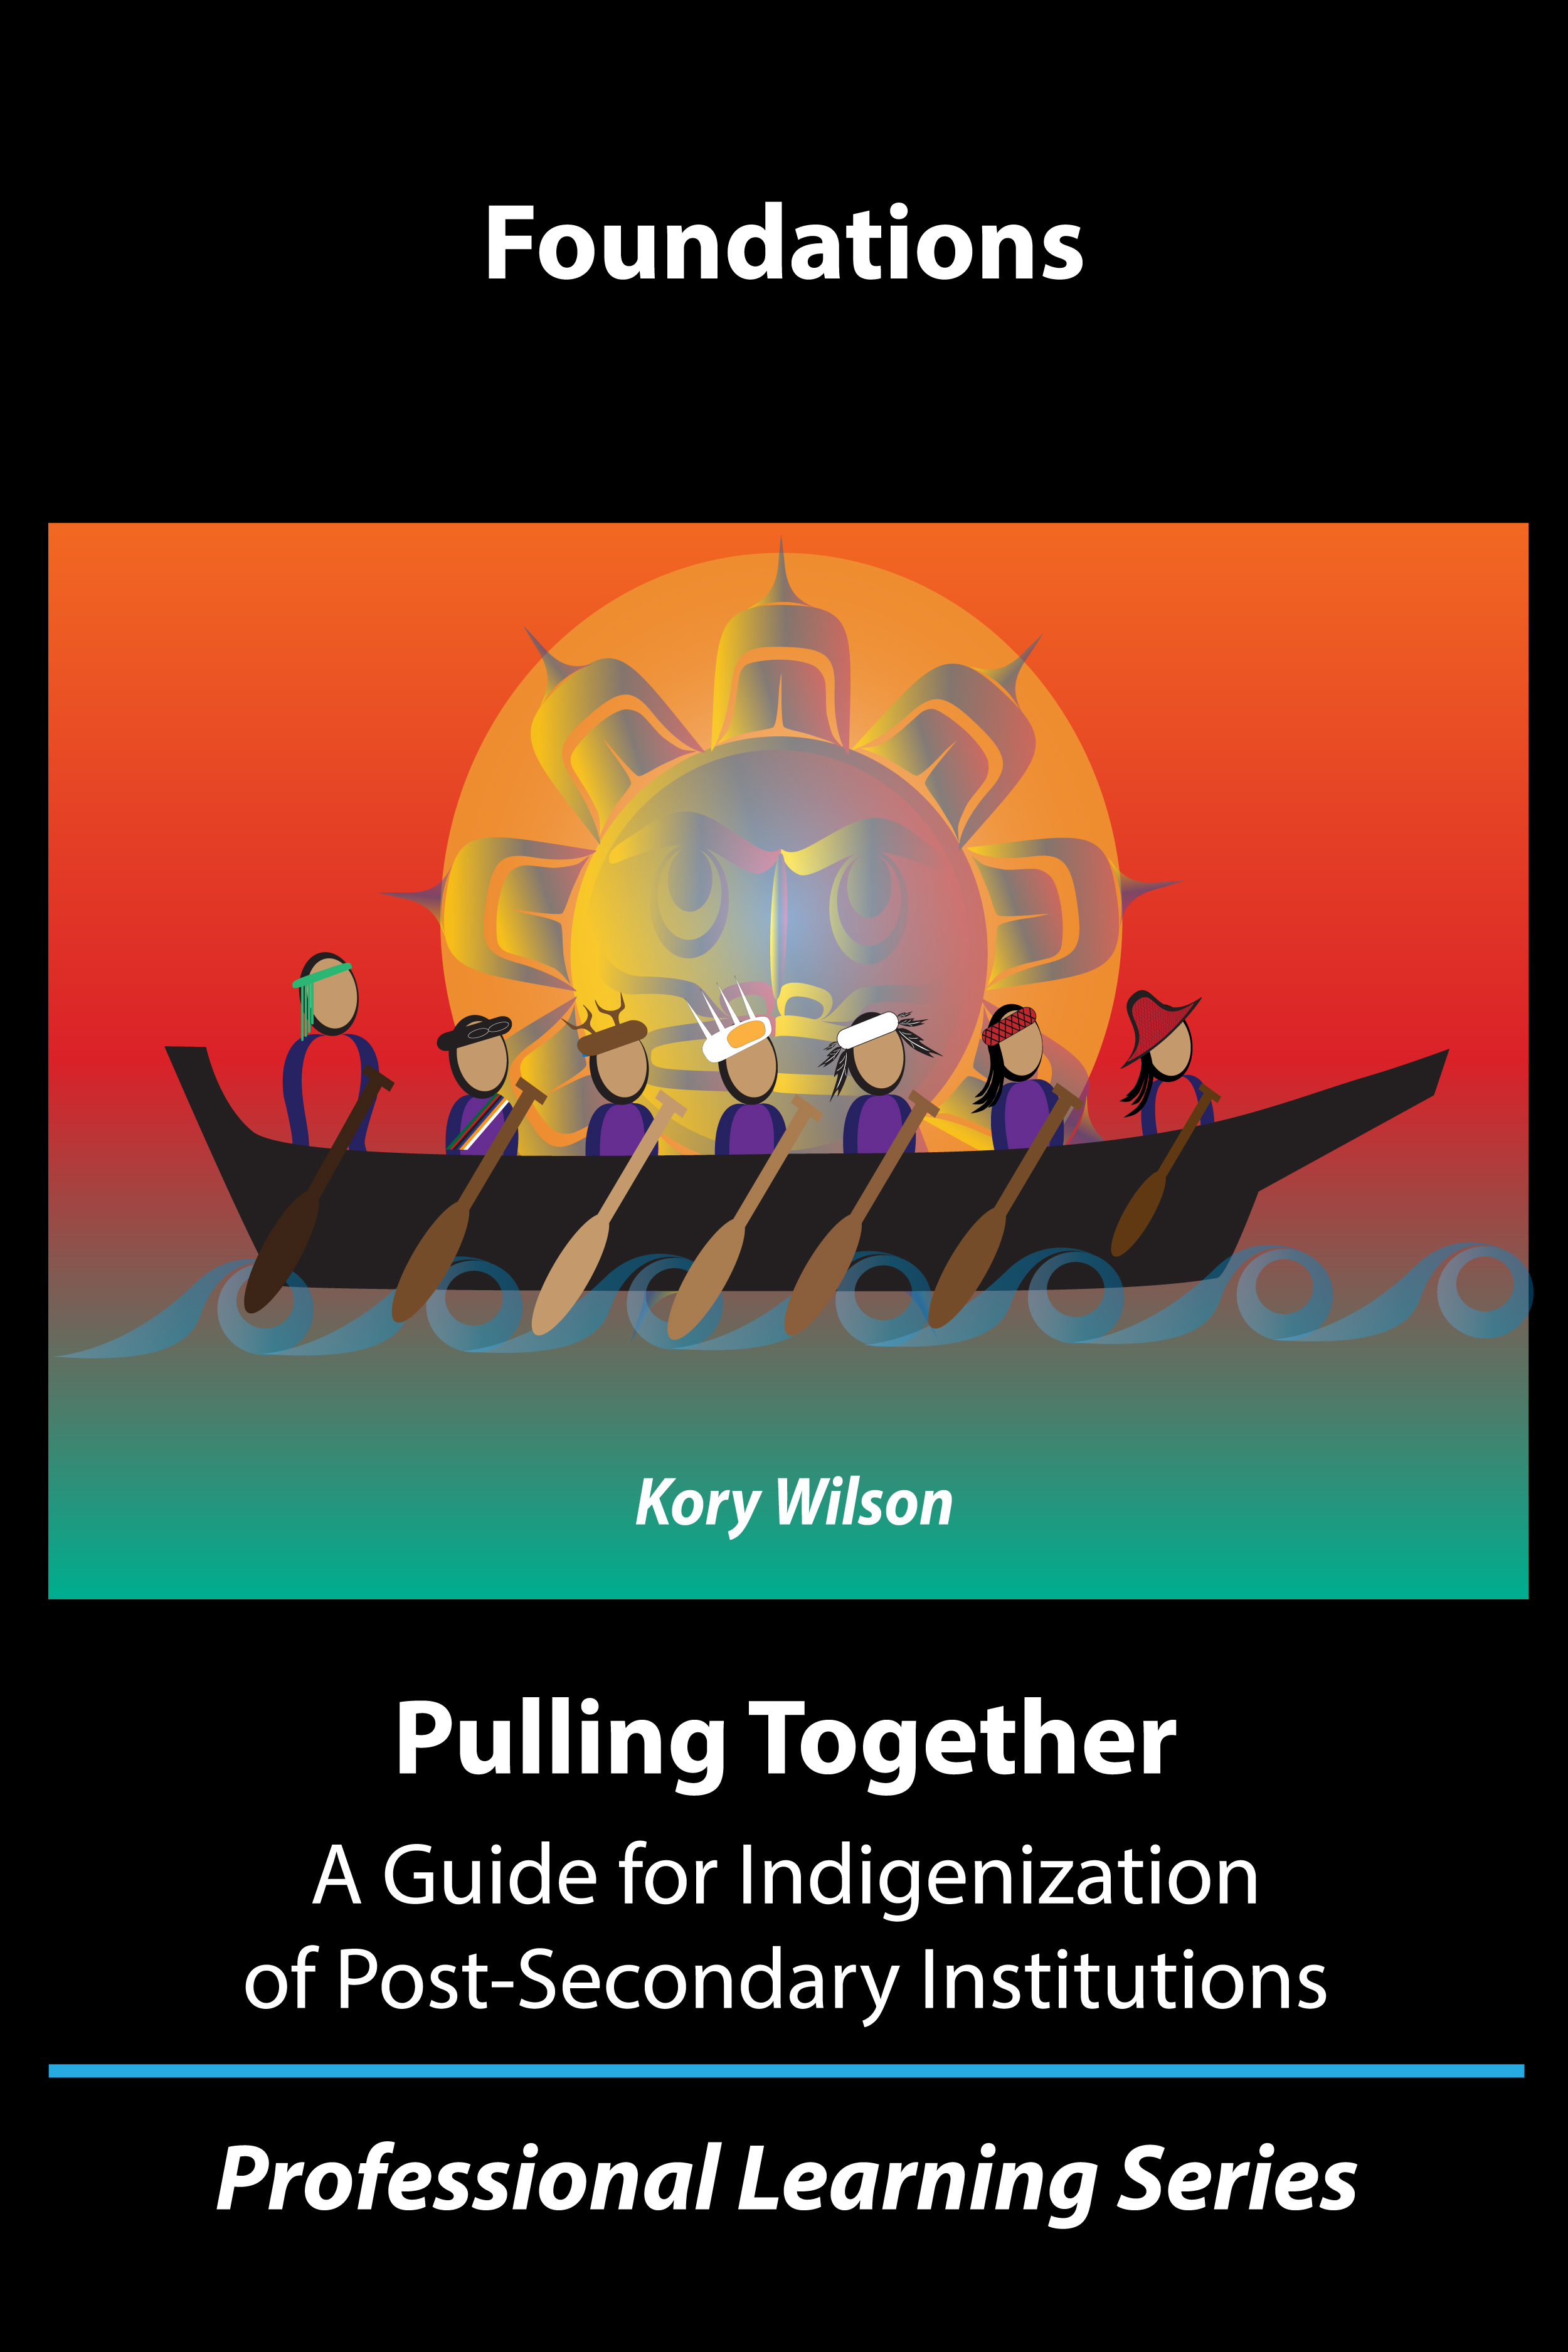 Cover image for Pulling Together: Foundations Guide